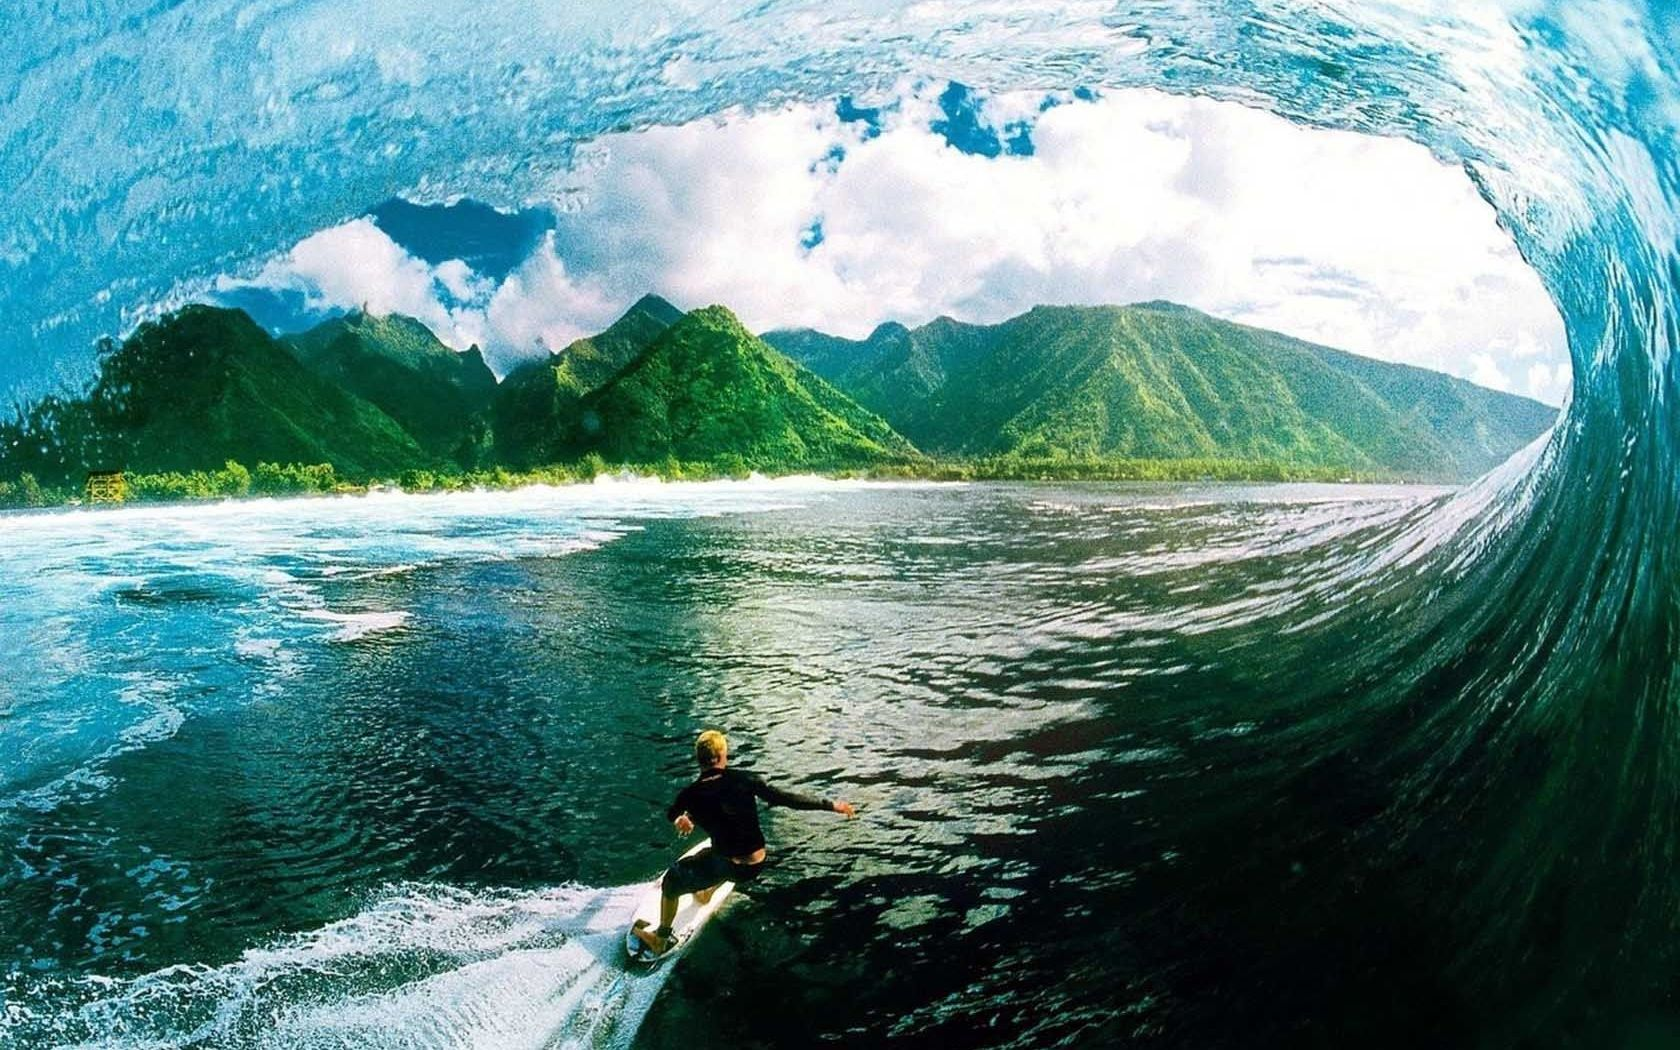 Hawaii Surfing Wallpapers   Top Hawaii Surfing Backgrounds 1680x1050